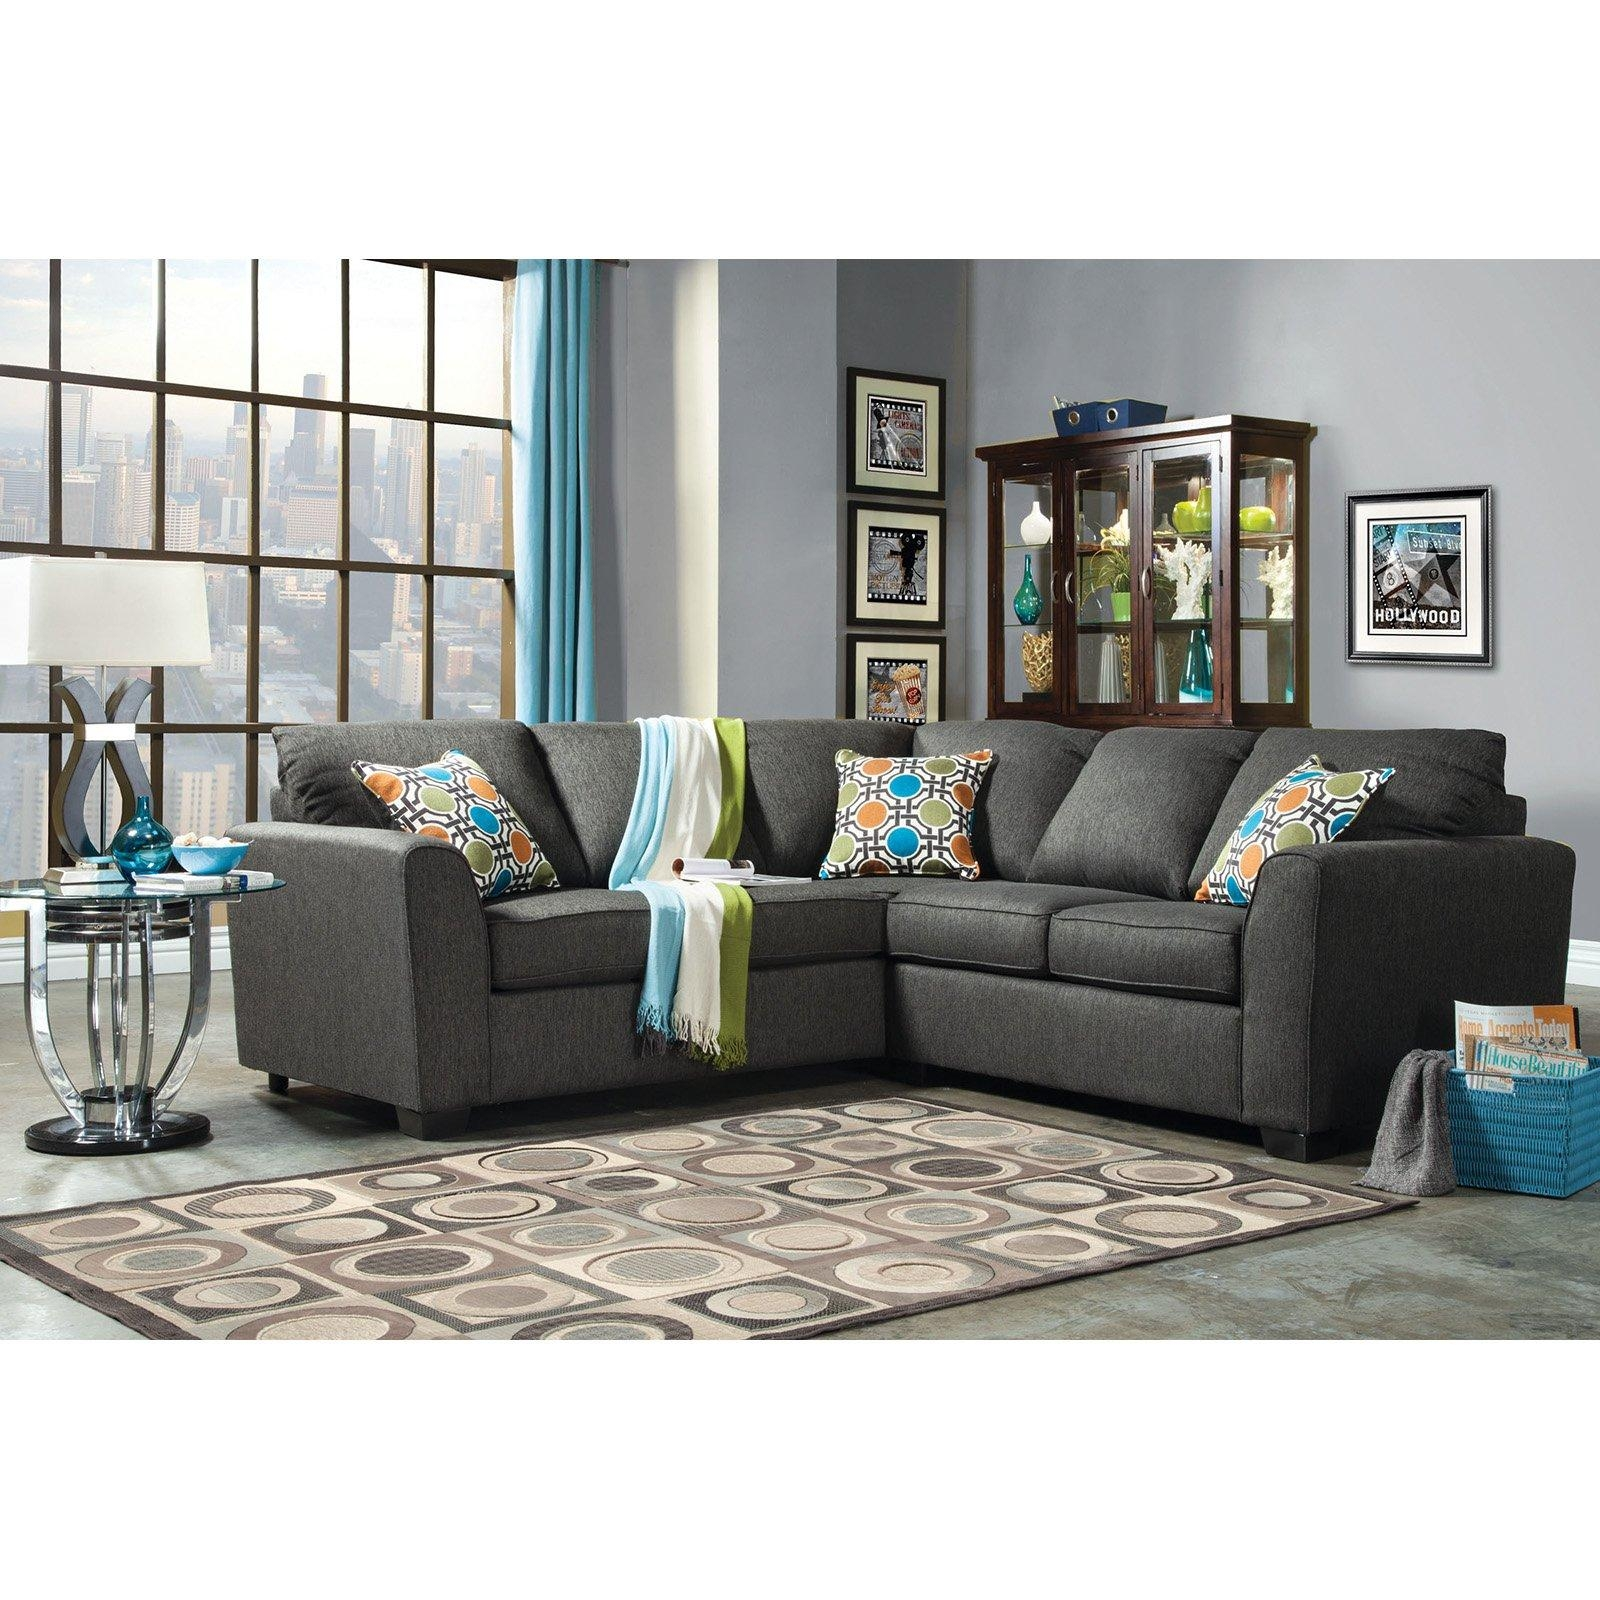 10 Spring Street Ashton Microfiber Sectional – Walmart Regarding Small 2 Piece Sectional (Image 1 of 20)